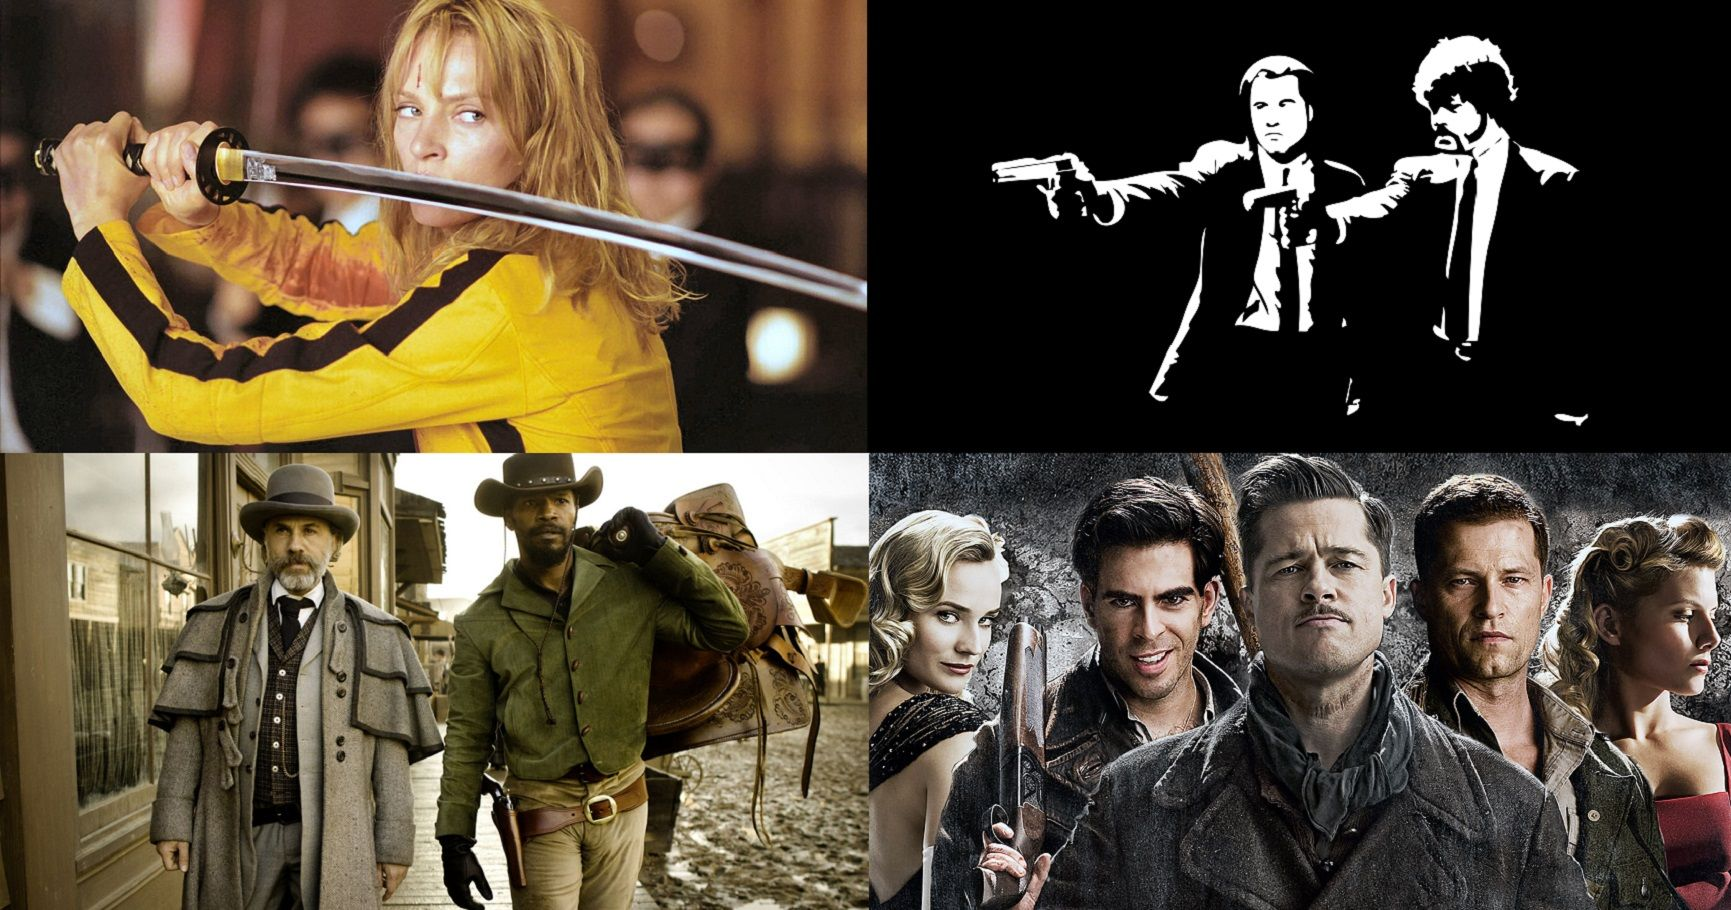 20 Things You Didn't Know About Quentin Tarantino's Movies